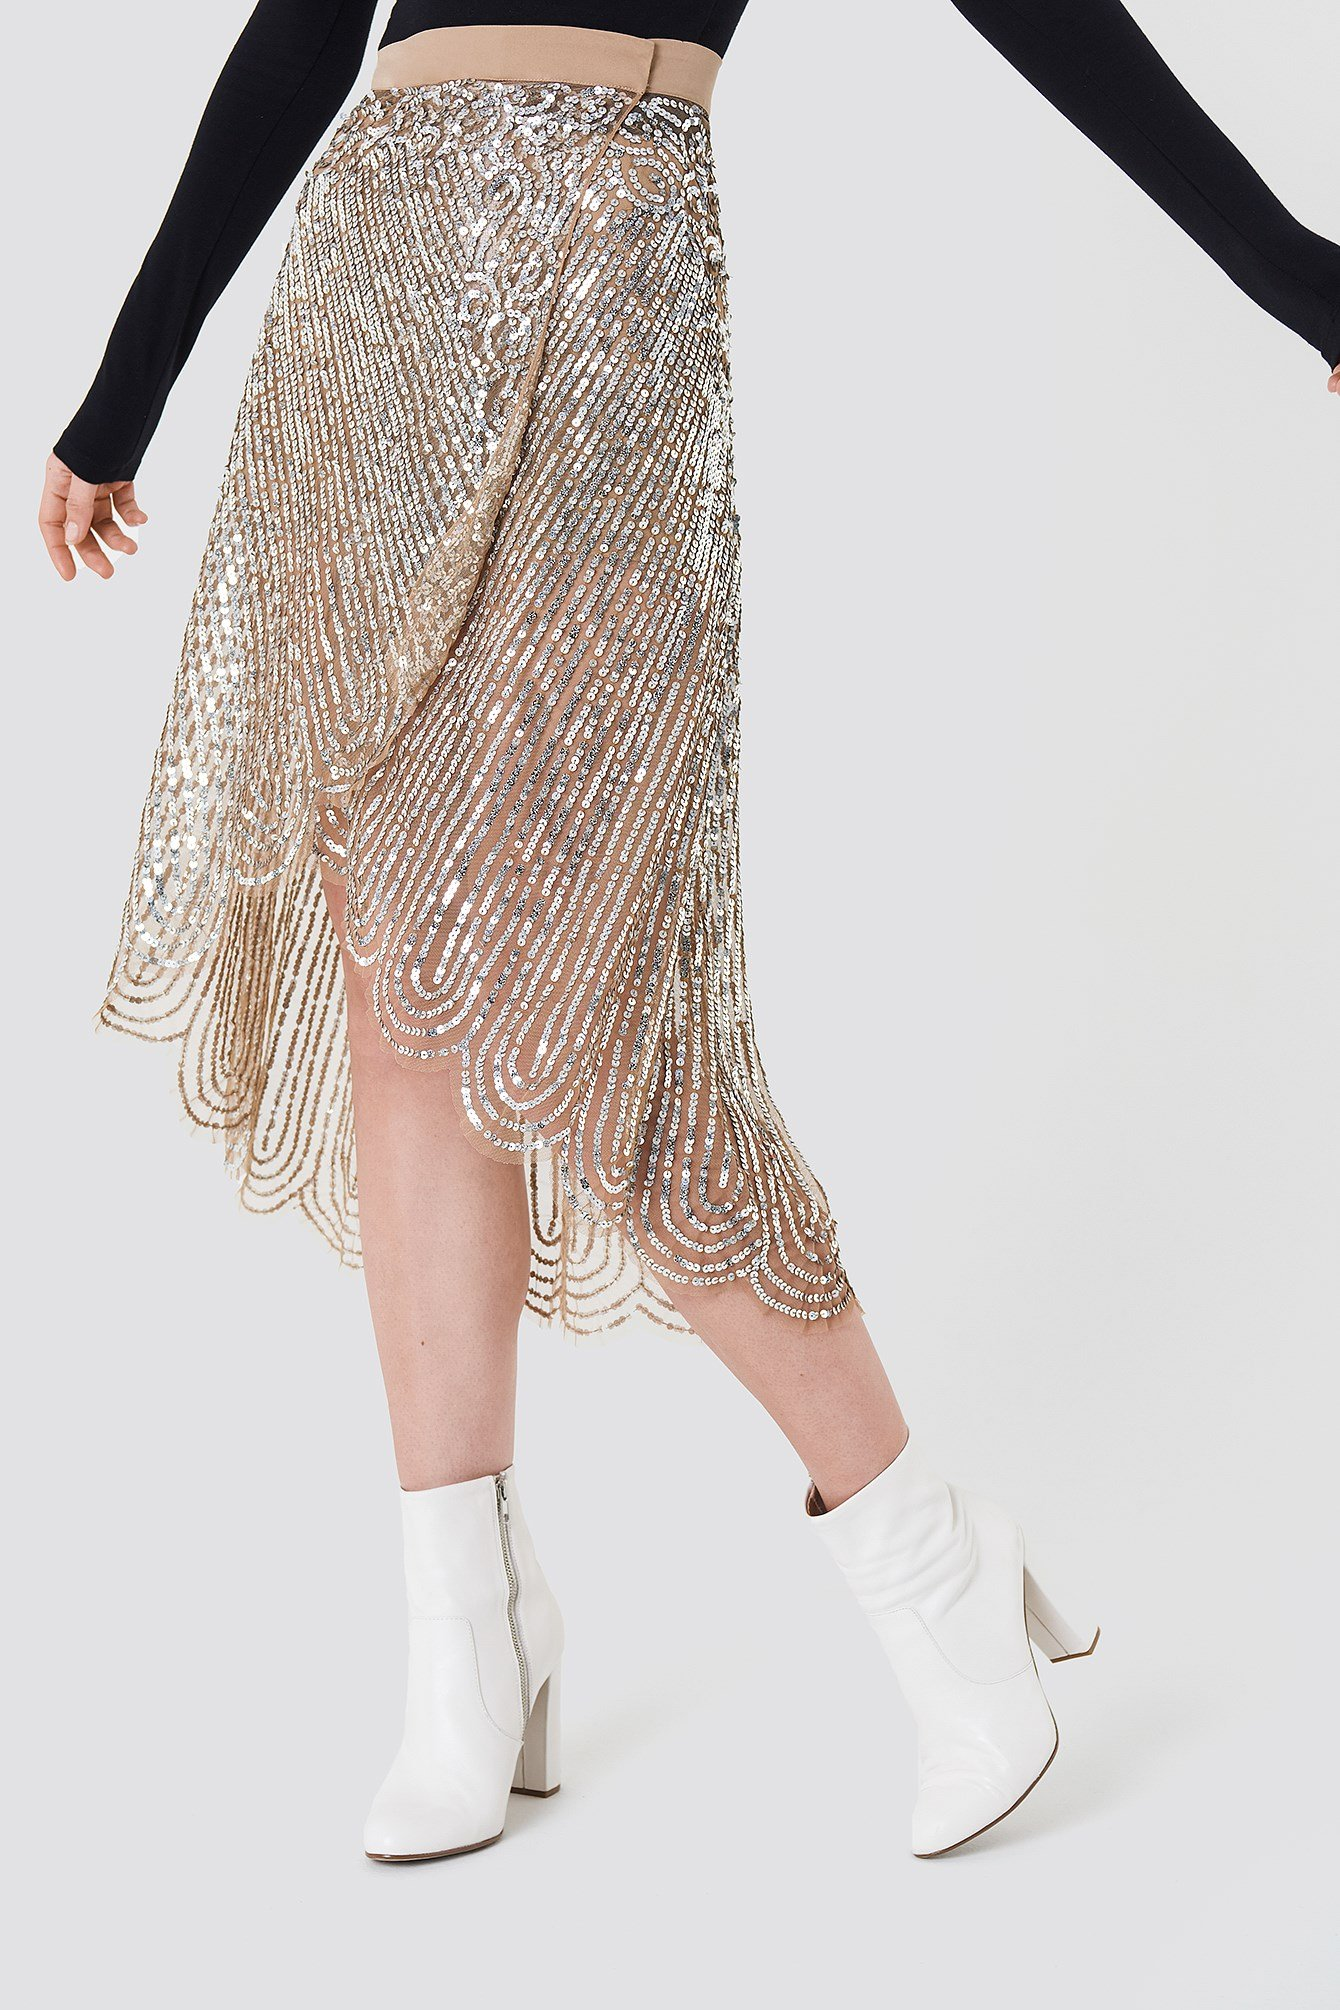 Gonna Paillettes Midi Skirt NA-KD.COM